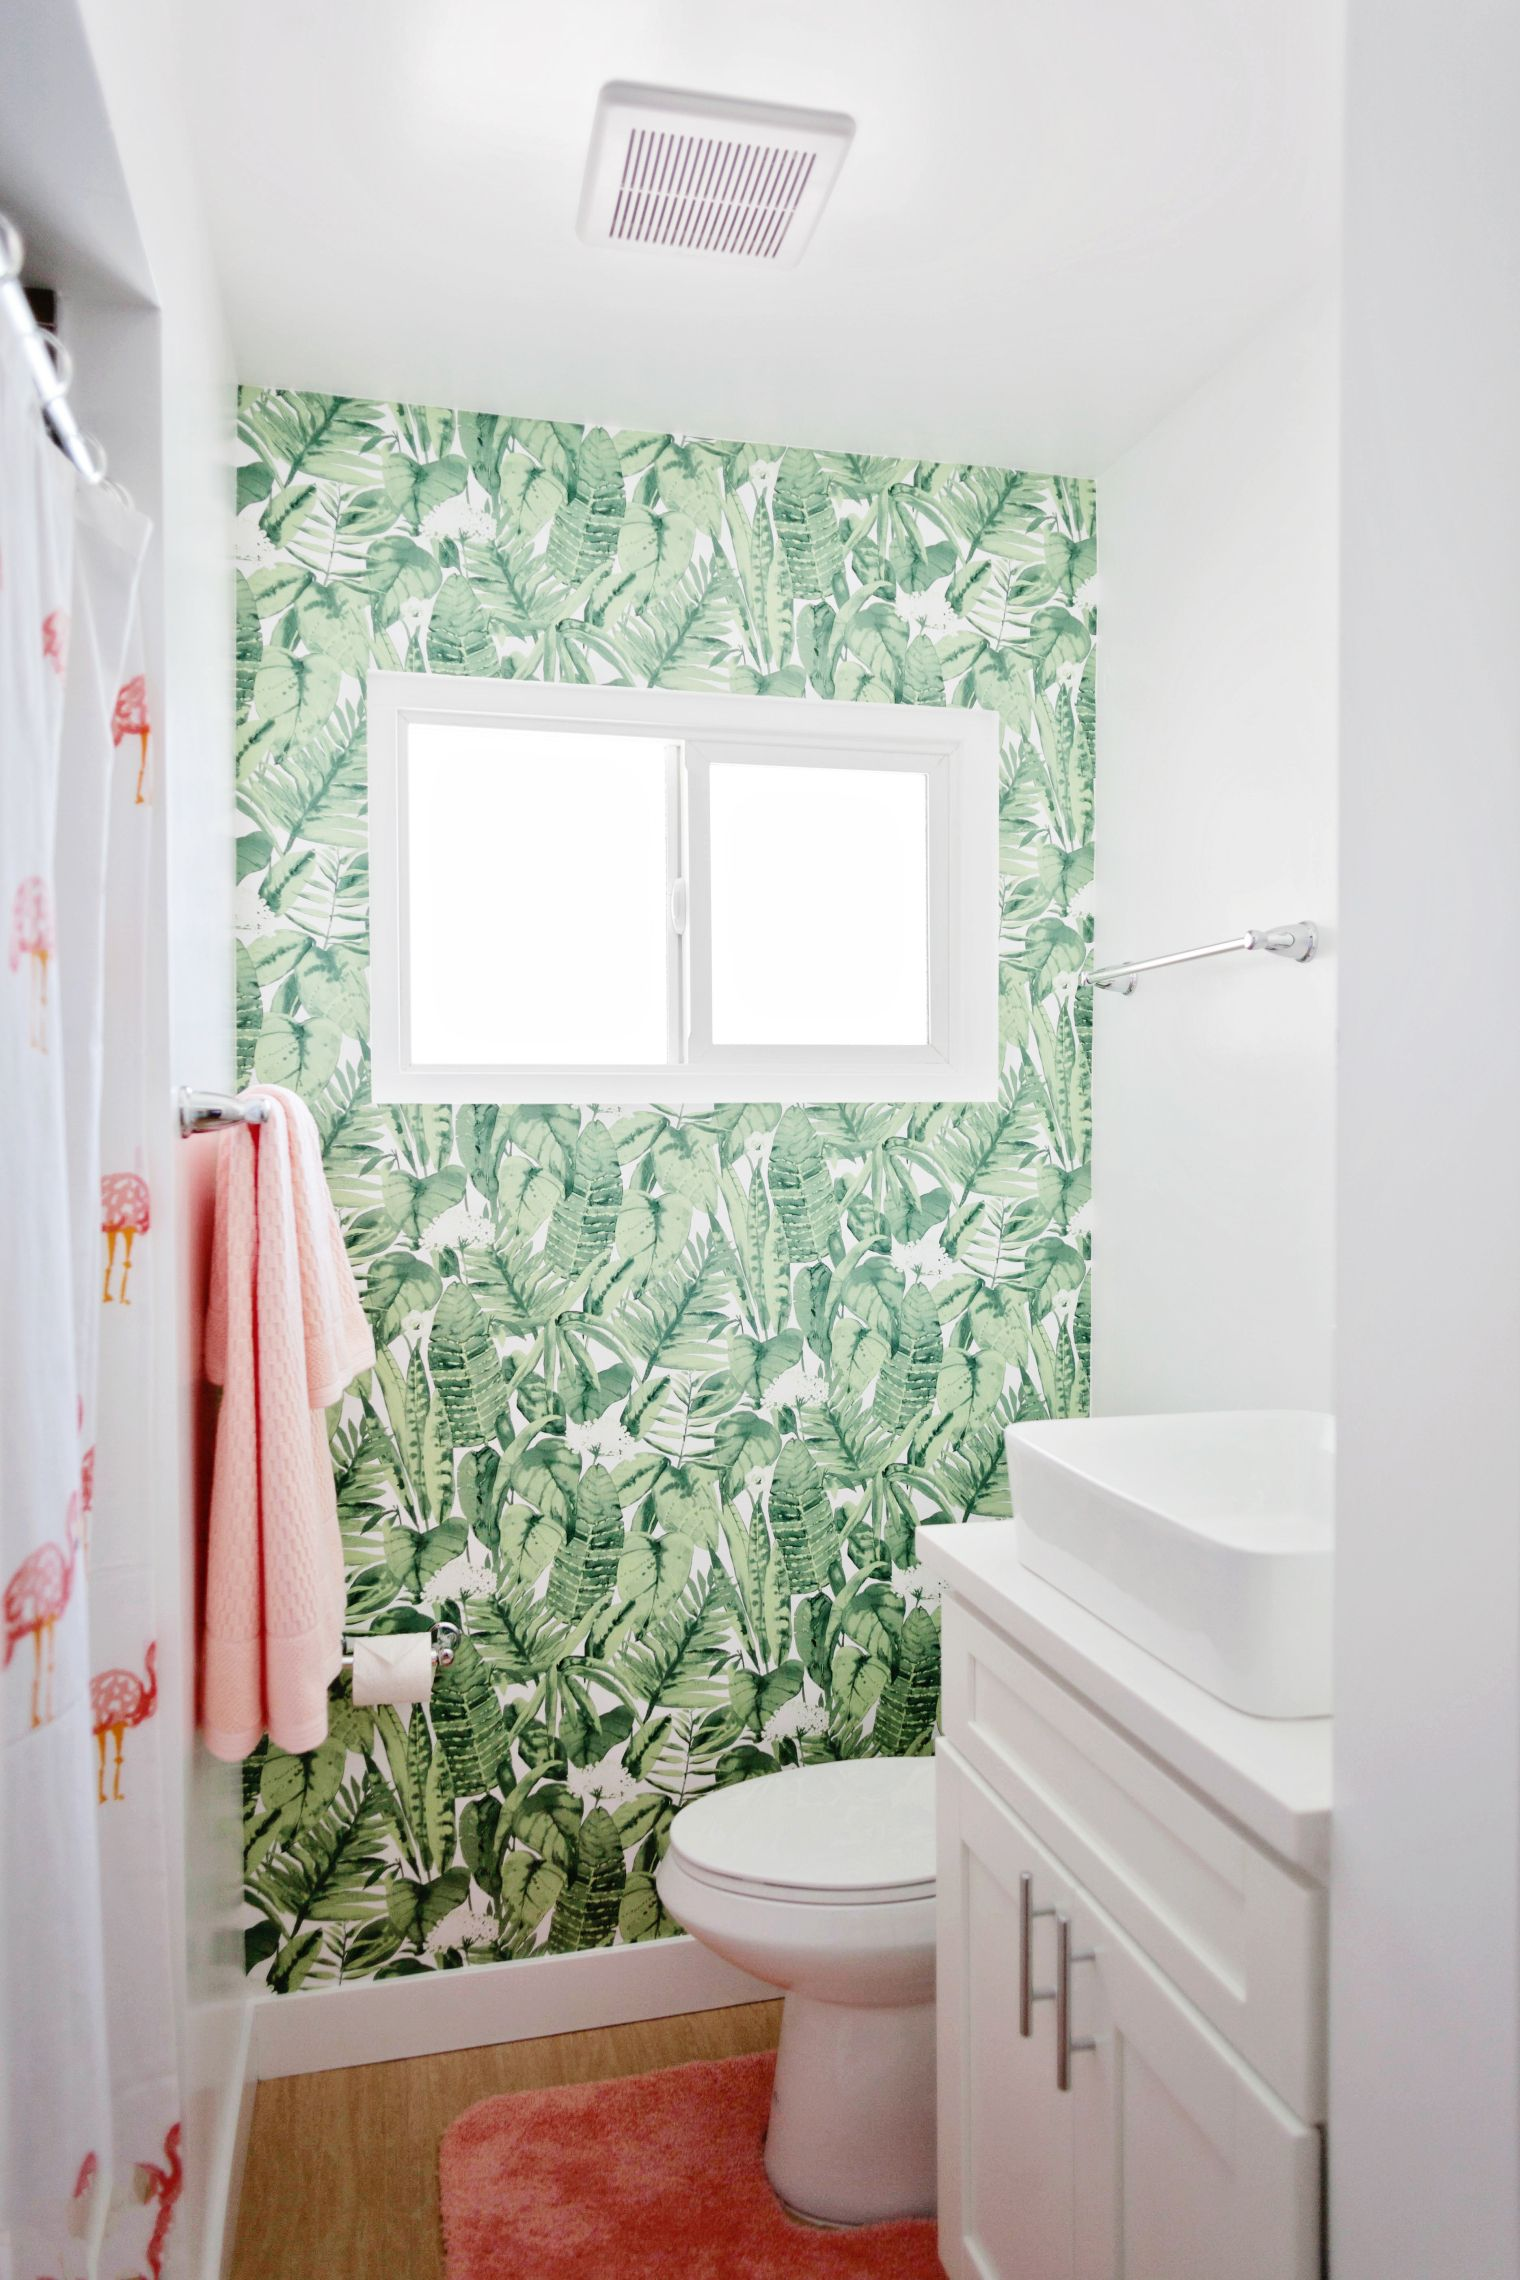 How To Install Peel And Stick Tempaper Wall Paper In A Bathroom 8 Green Room Decor Cottage Style Bathrooms Modern Master Bathroom